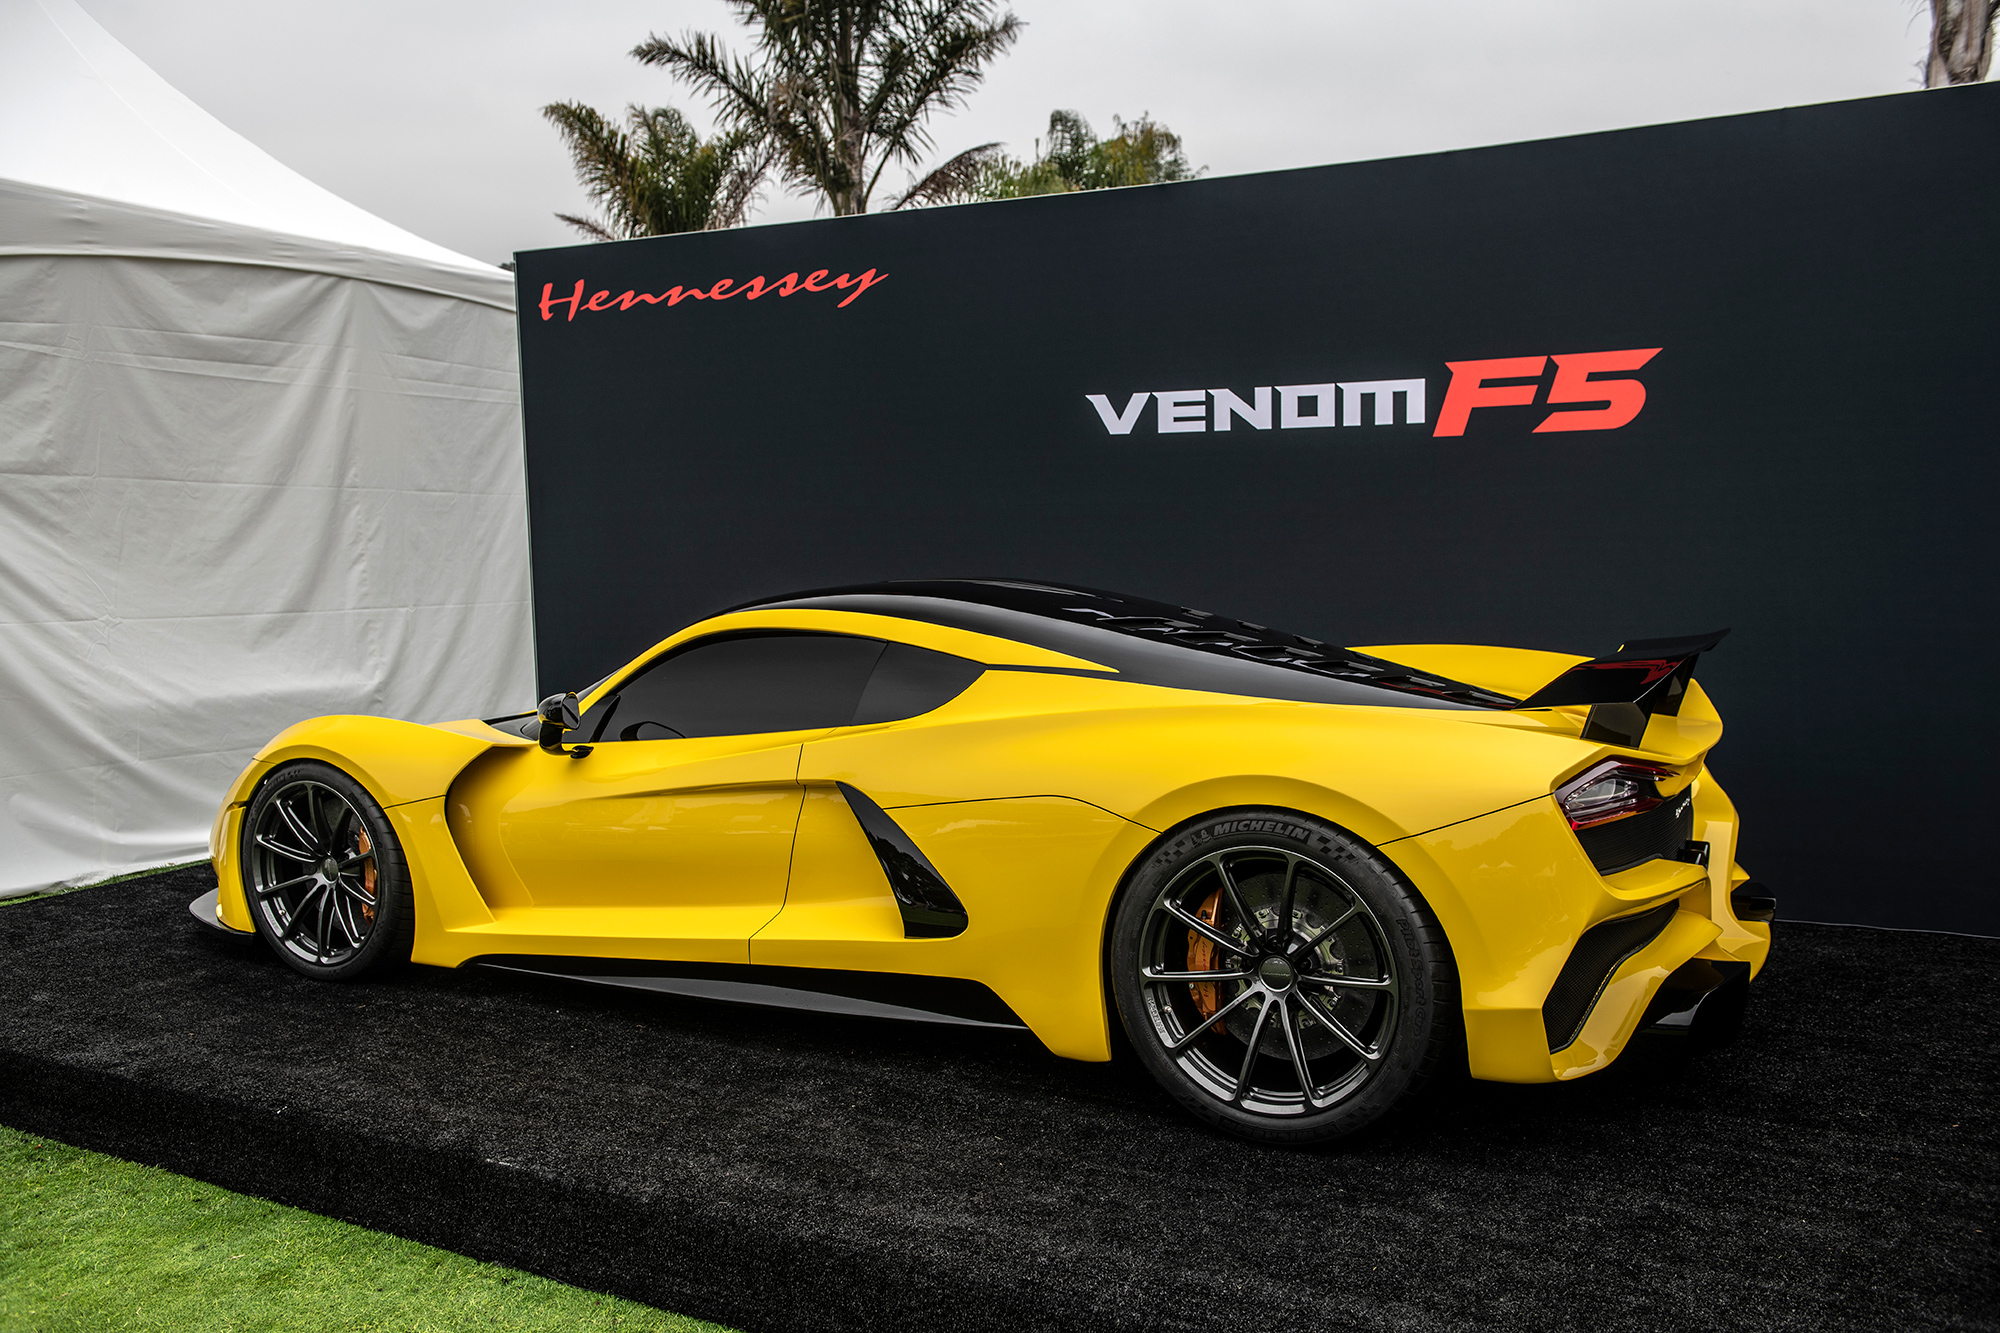 Hennessey Venom F5 at The Quail Motorsports Gathering 2018